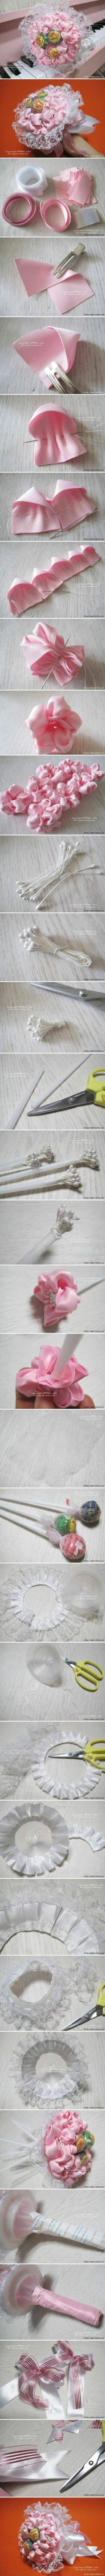 DIY Ribbon and Lace Candy Bouquet DIY Projects